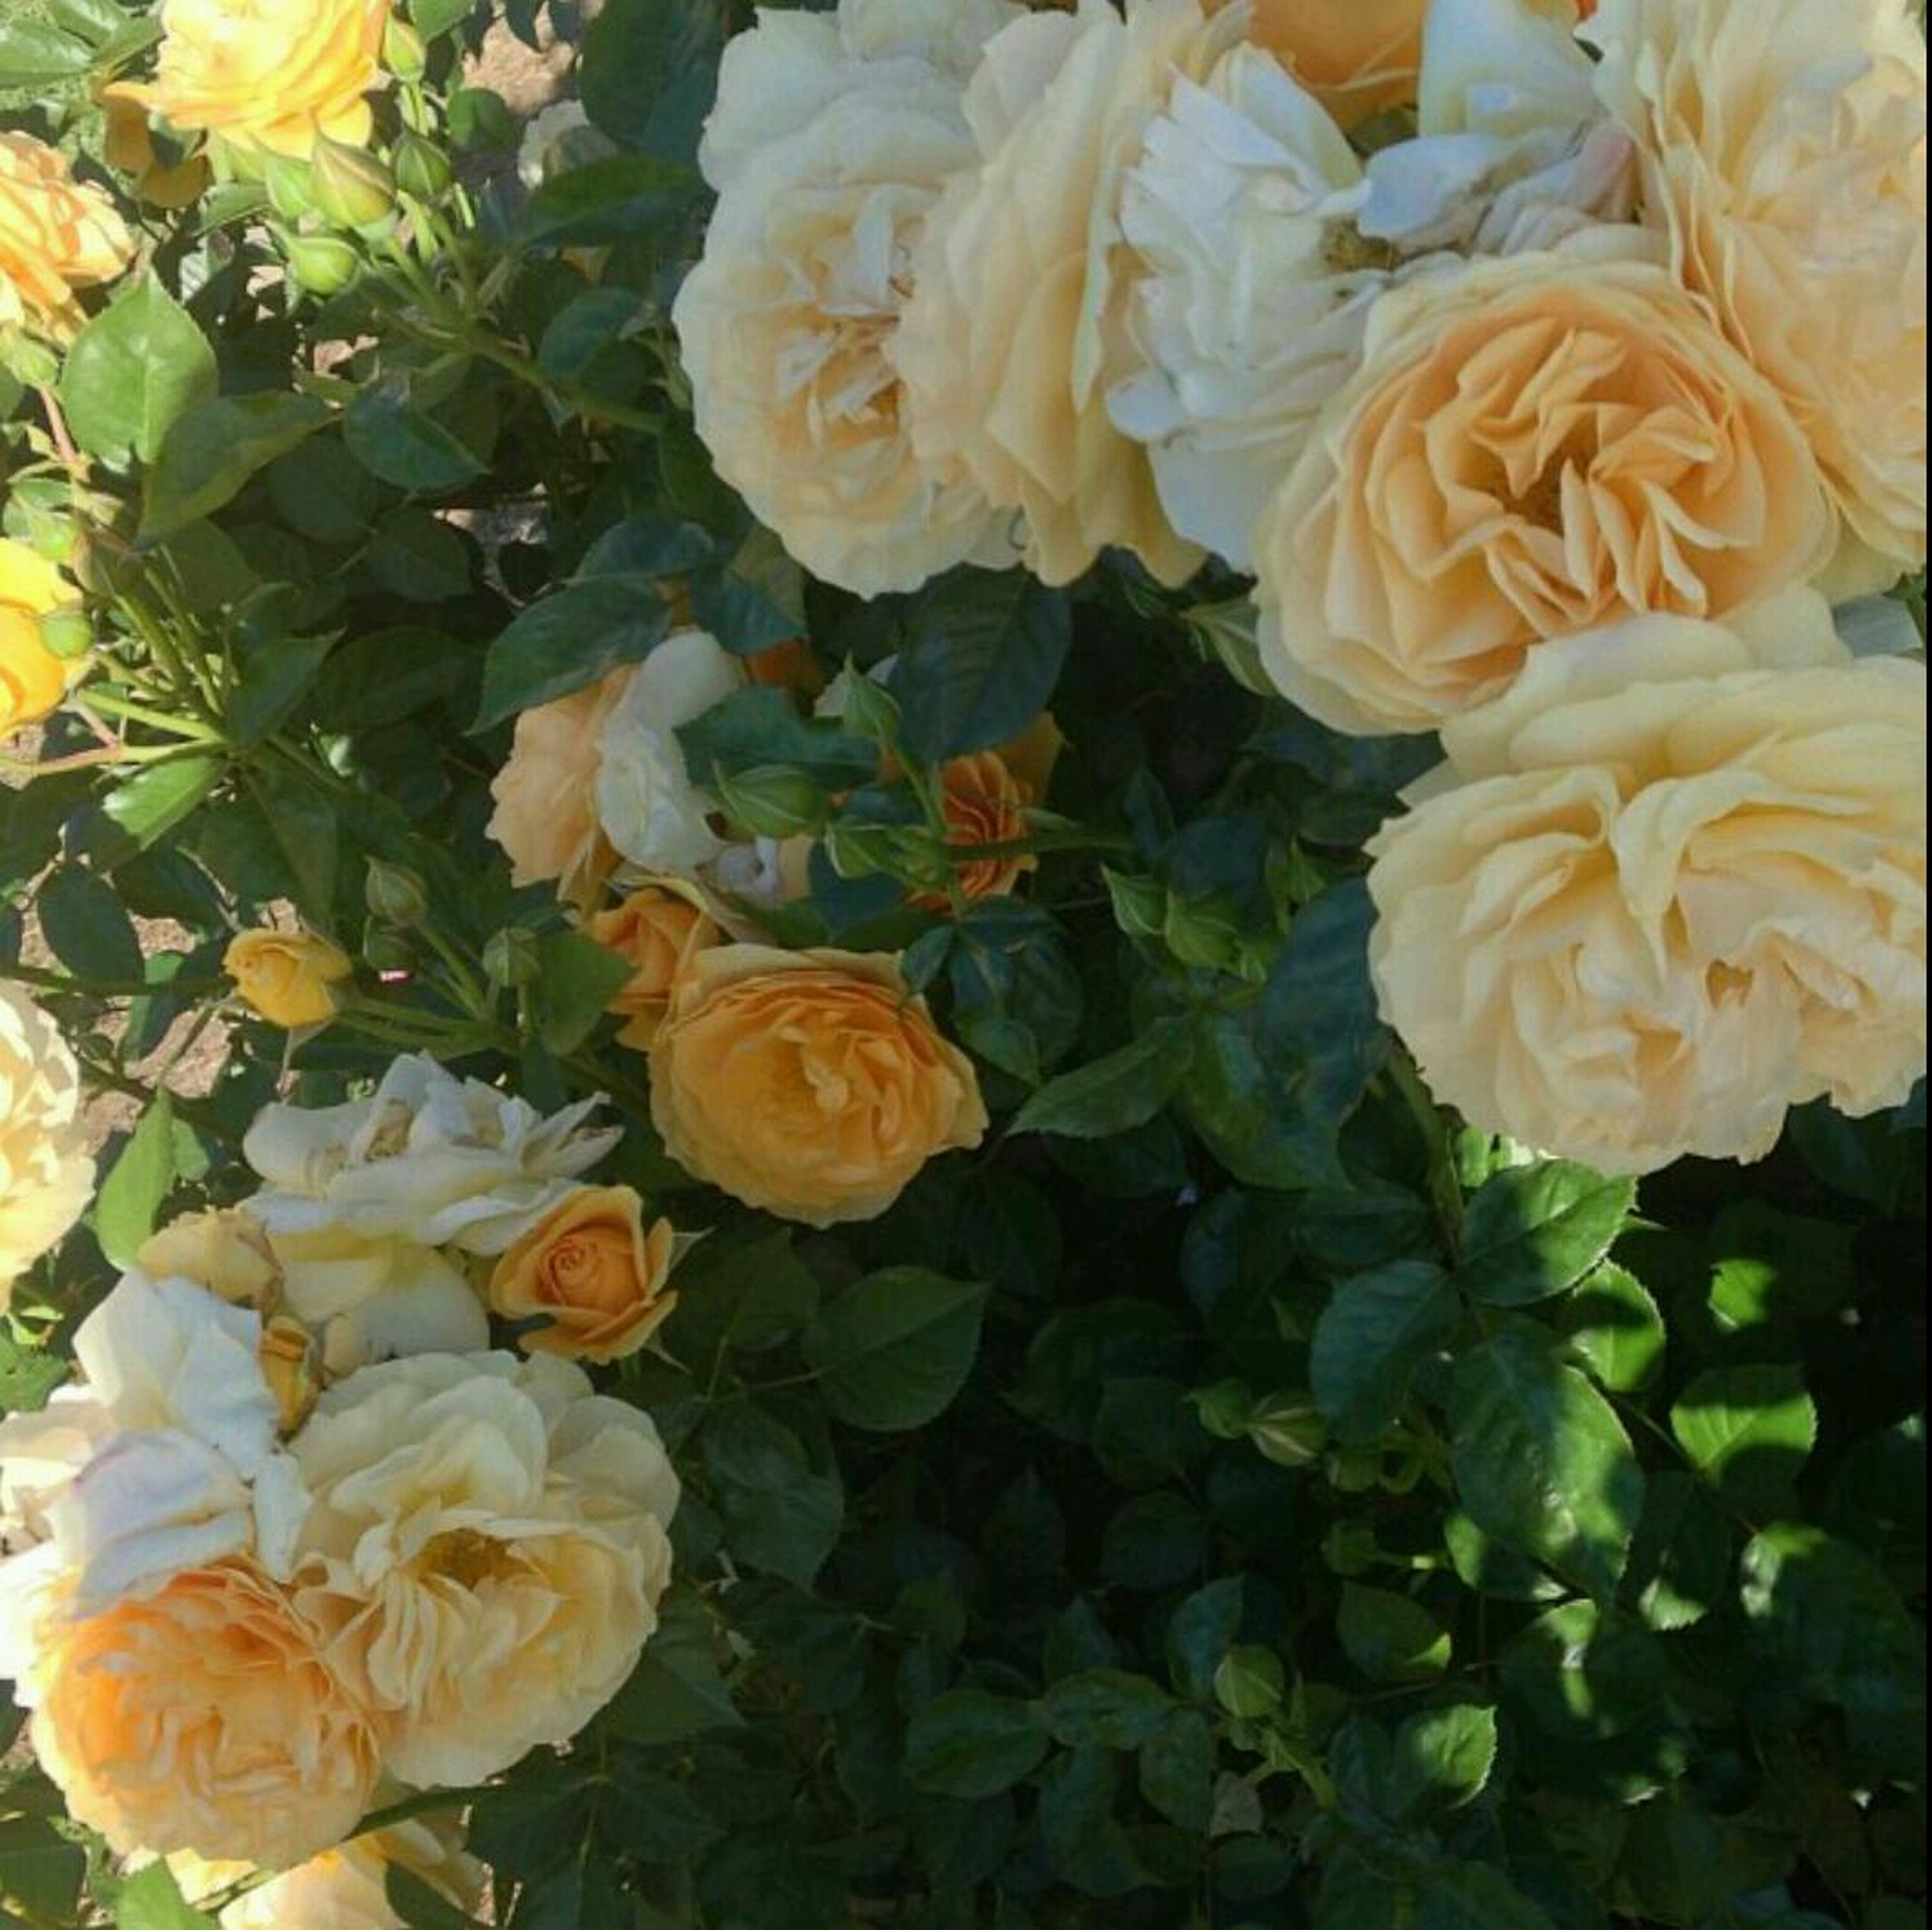 flower, freshness, petal, fragility, flower head, beauty in nature, growth, blooming, high angle view, nature, rose - flower, plant, leaf, close-up, in bloom, full frame, yellow, blossom, bunch of flowers, orange color